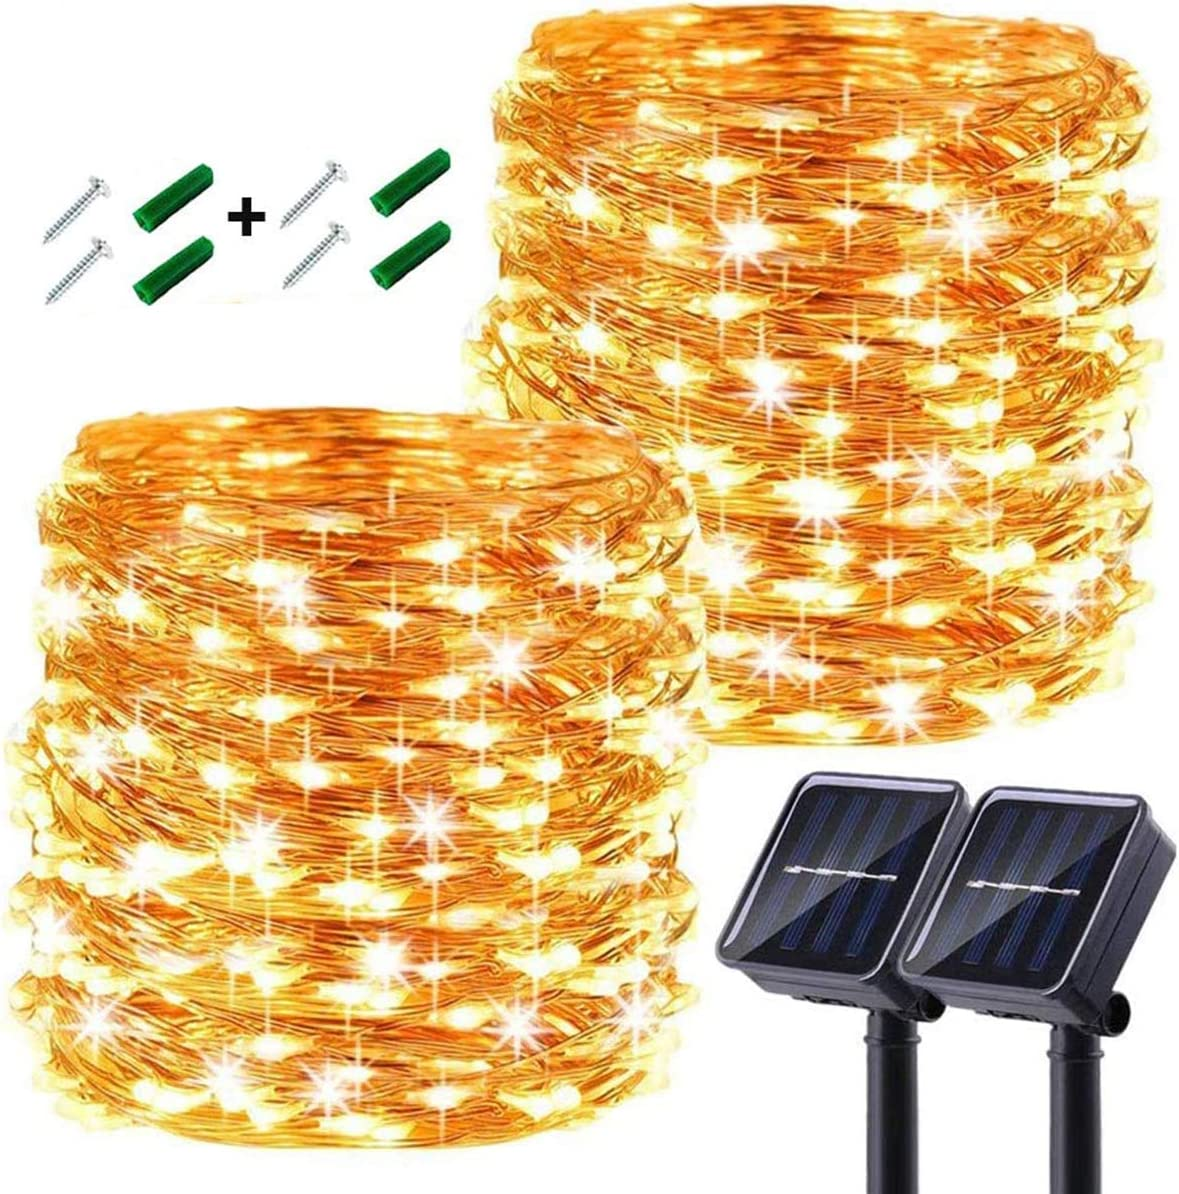 LiyuanQ Solar String Lights Outdoor, Upgraded 2 Pack 240 LED Solar Fairy Lights 88ft 8 Modes Waterproof Outdoor Garden Light Copper Wire Lighting for Wedding Patio Yard (Warm White)